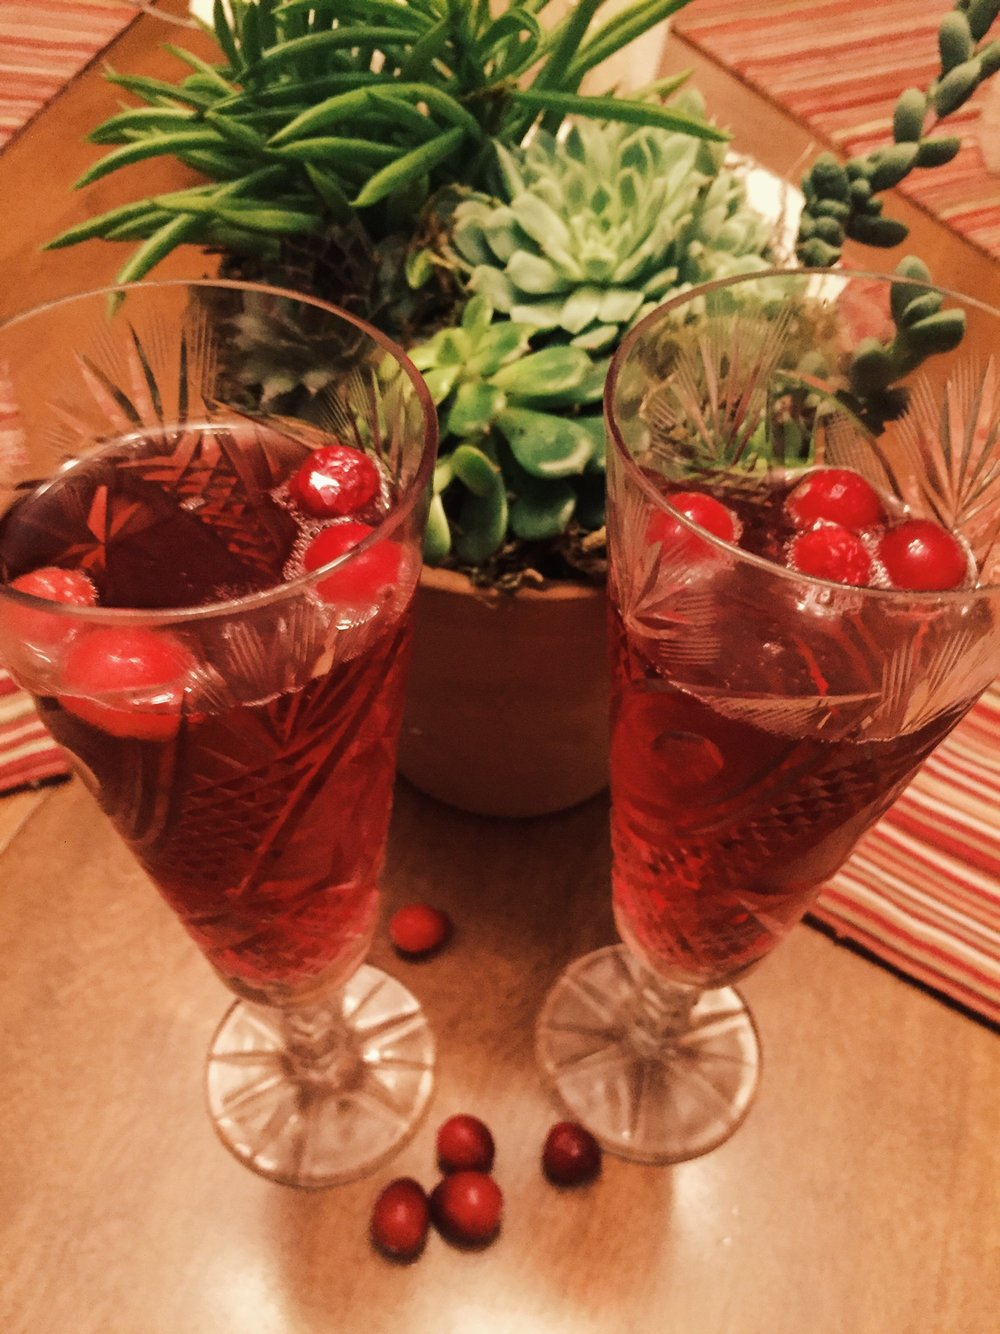 This cranberry berry mimosa makes the perfect drink for the winter holiday season. (Megan Krementowski/The Daily Campus)